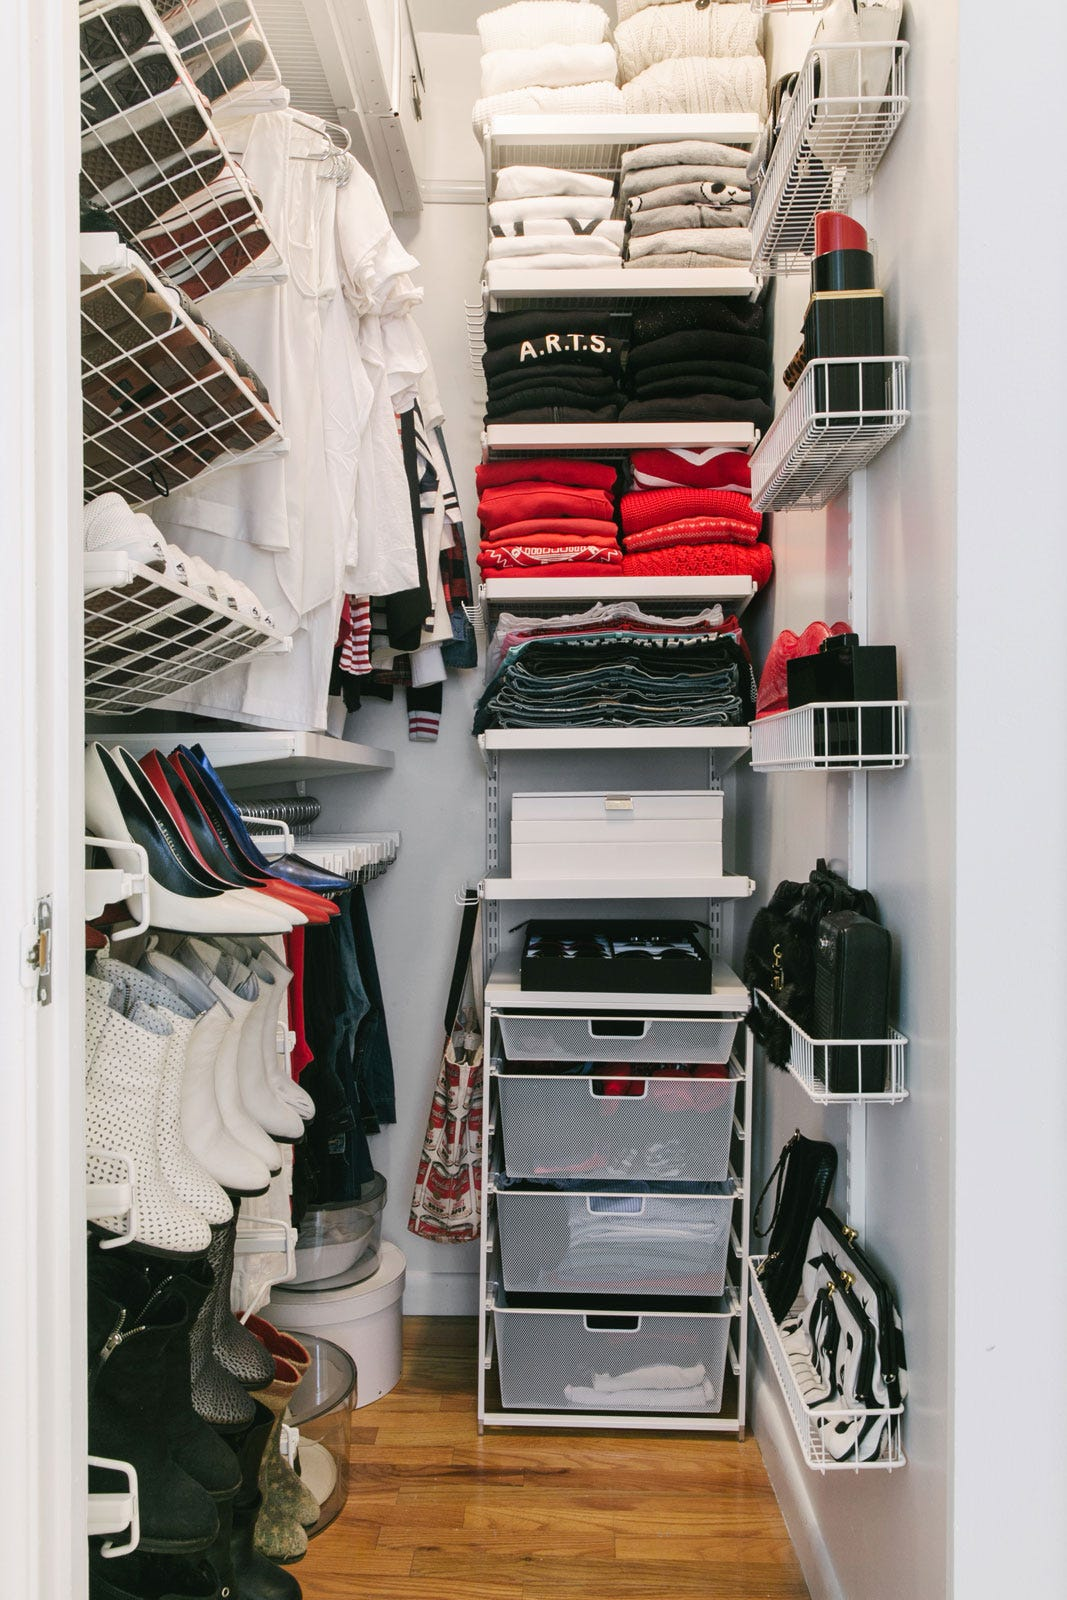 Small walk in closet organization tips - Closet storage ideas small spaces model ...